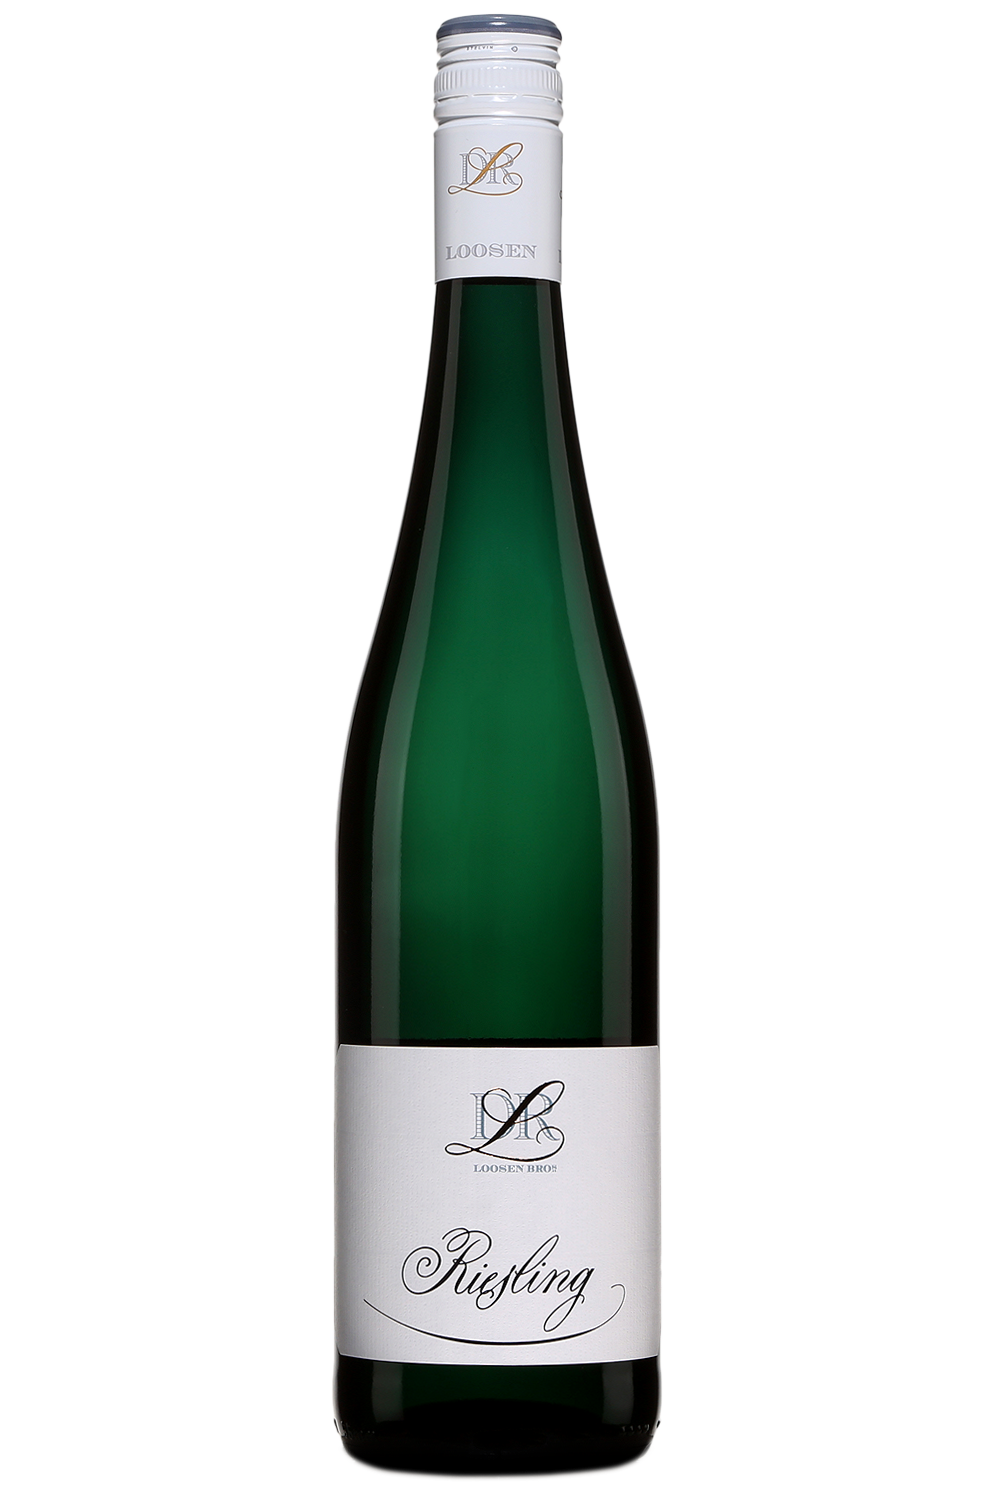 Dr. Loosen Riesling Mosel 2019